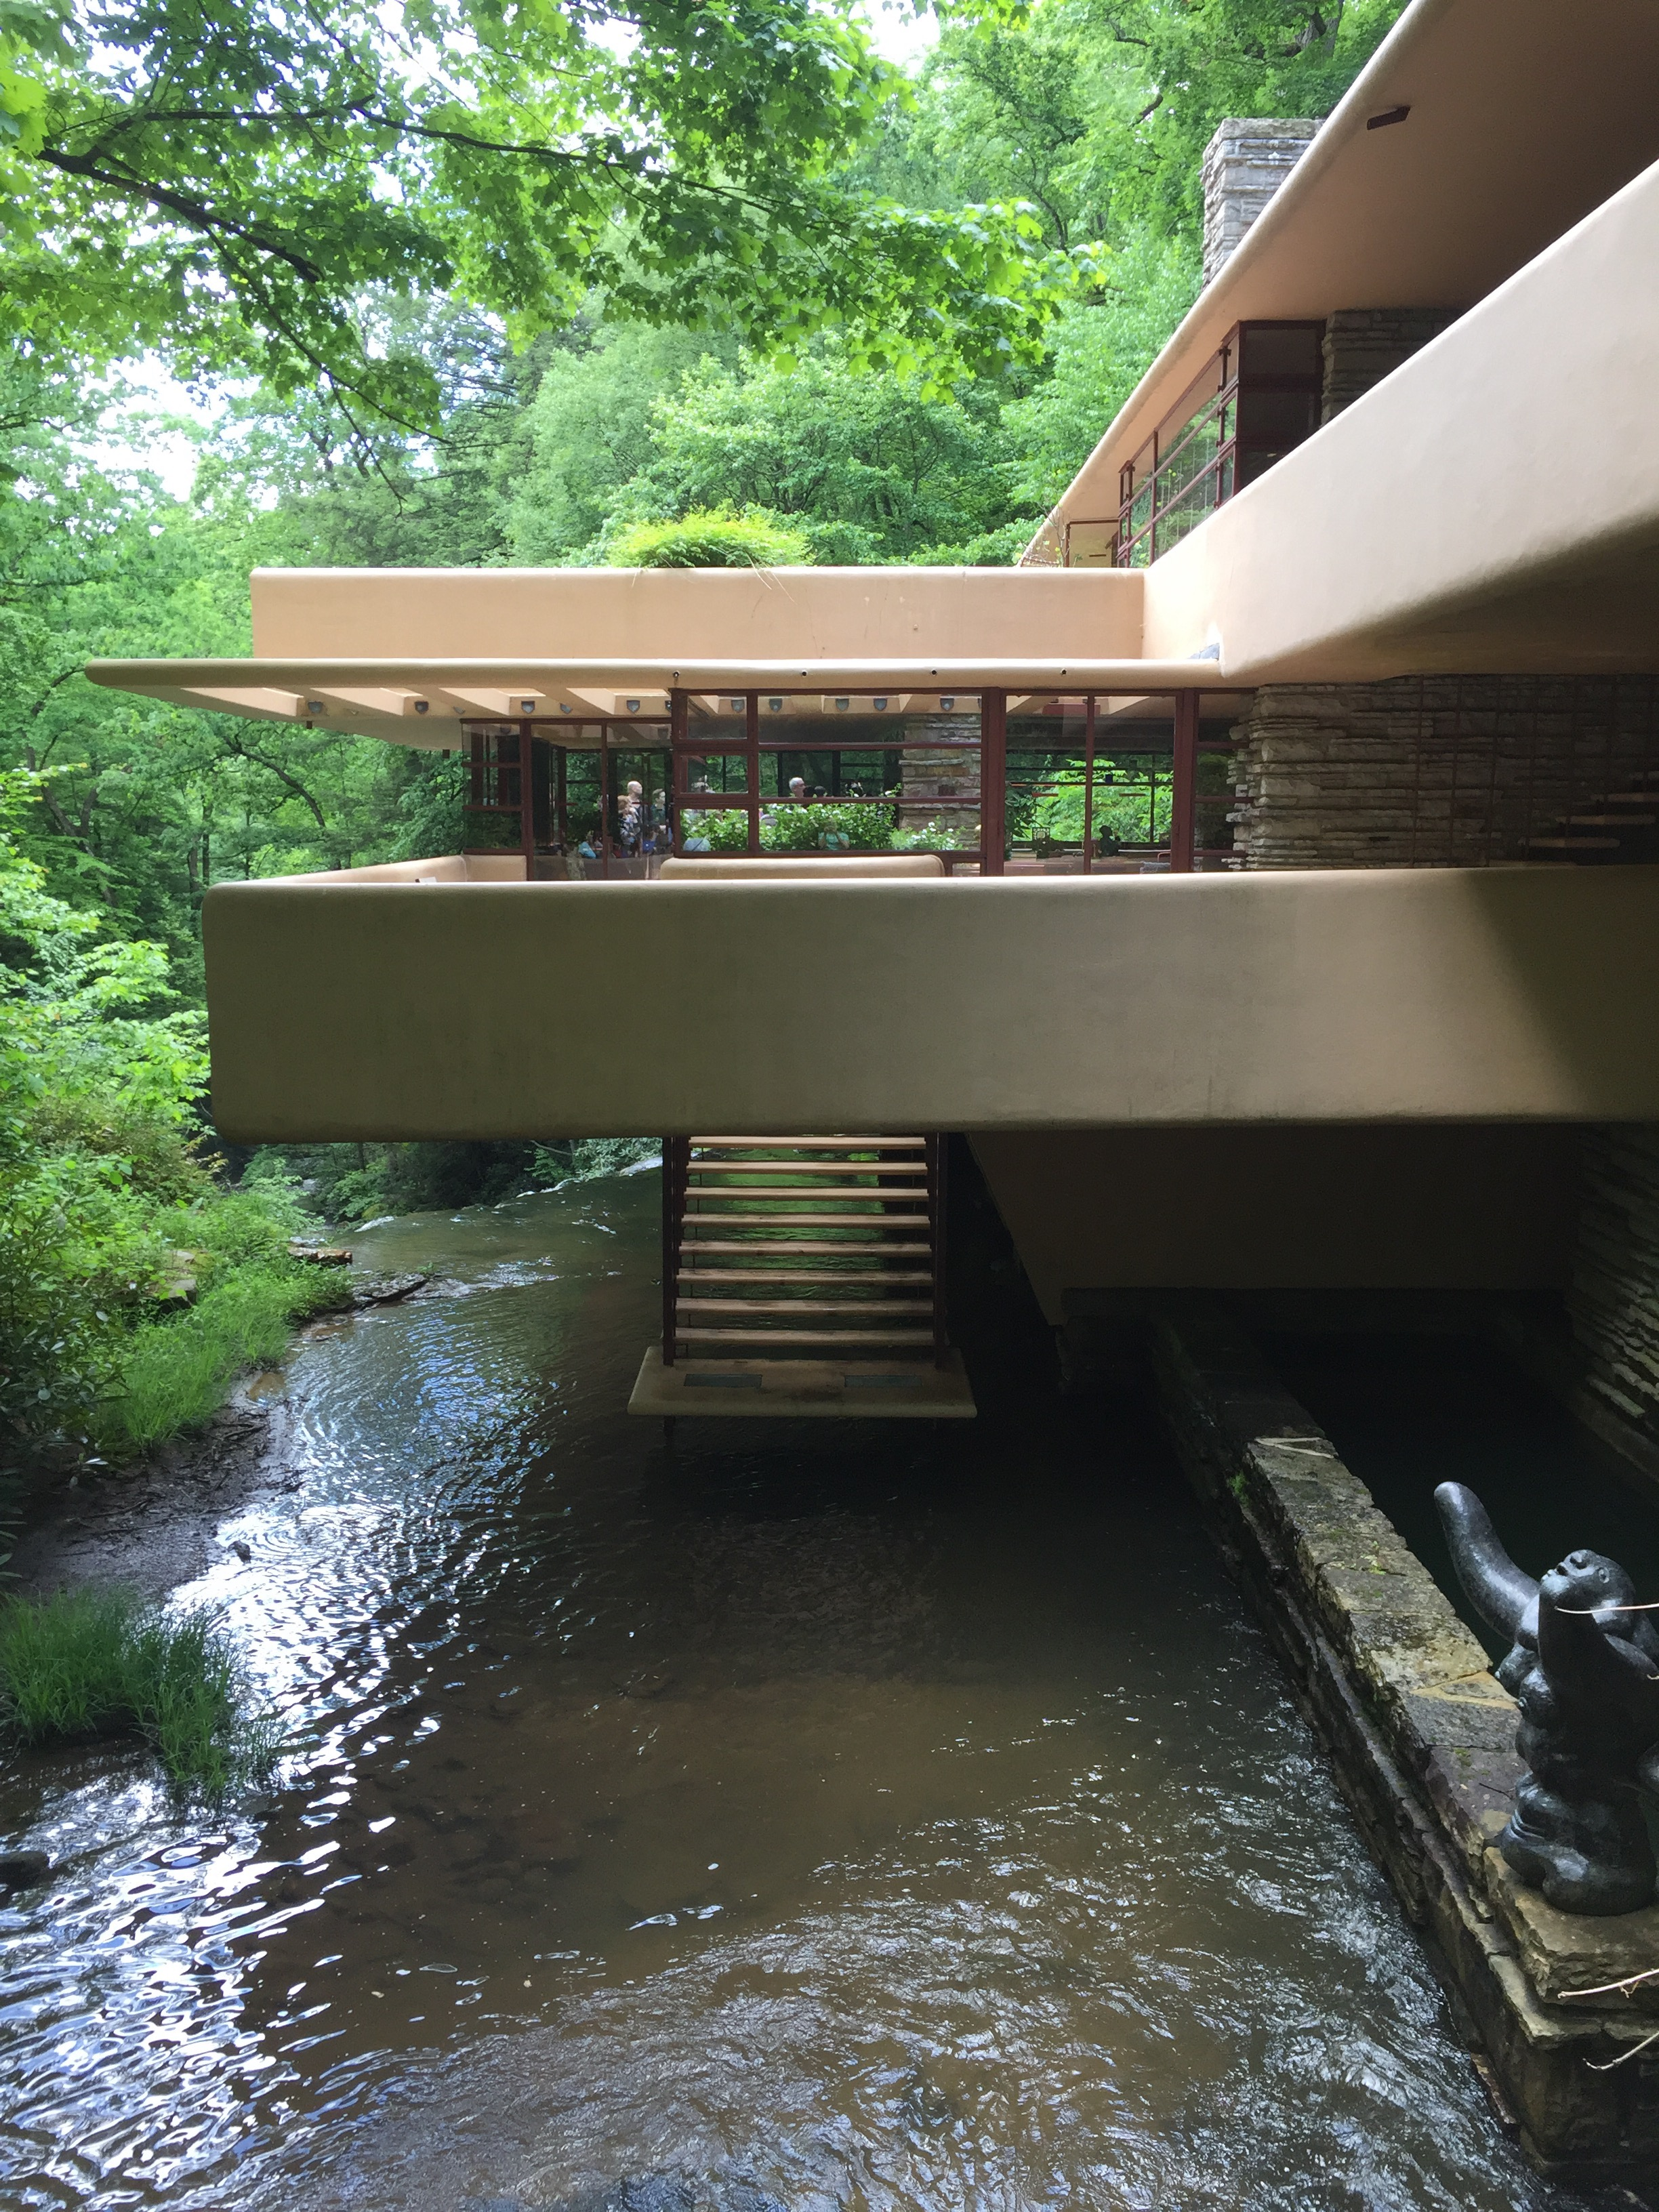 Fallingwater was built right on top of the river, which means Wright had to use a cantilever system to anchor the portions of the house that extend over the river. He also used the natural coolness of the river as a natural air conditioner for the house, and as a ready-made swimming hole on hot summer days.